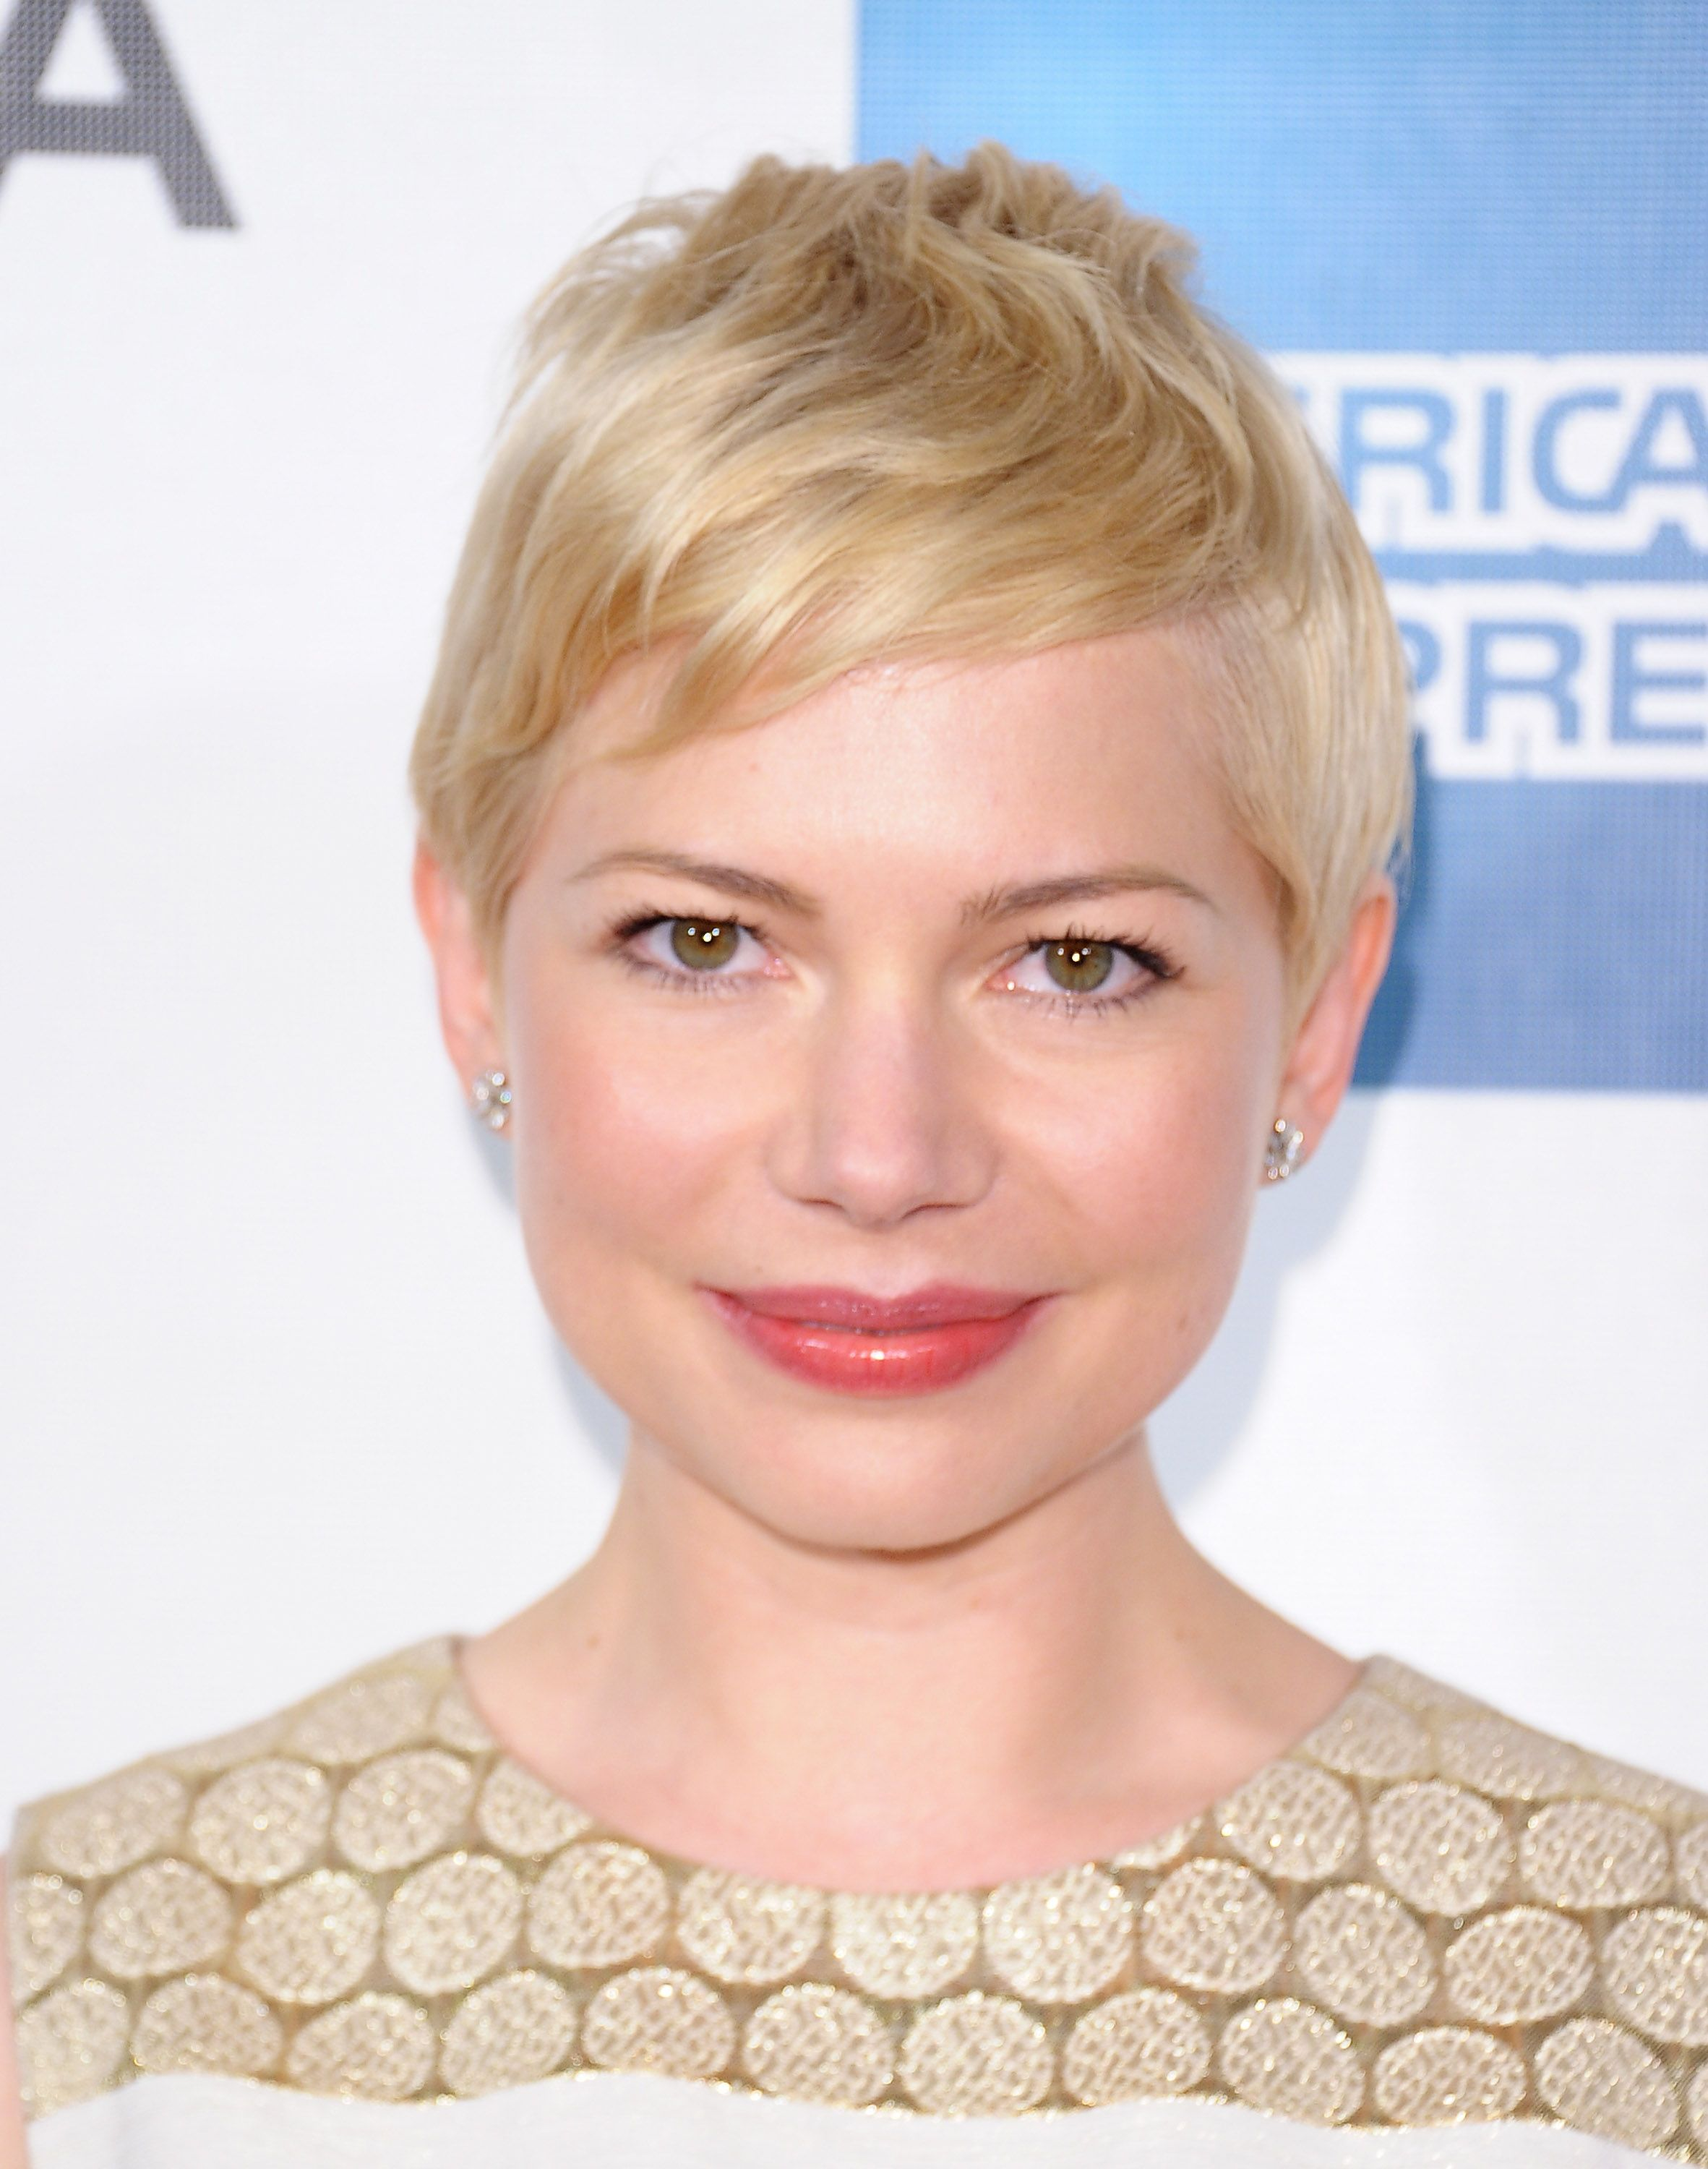 Watch 2014 Michelle Williams Short Hair Styles: Pixie Haircut video